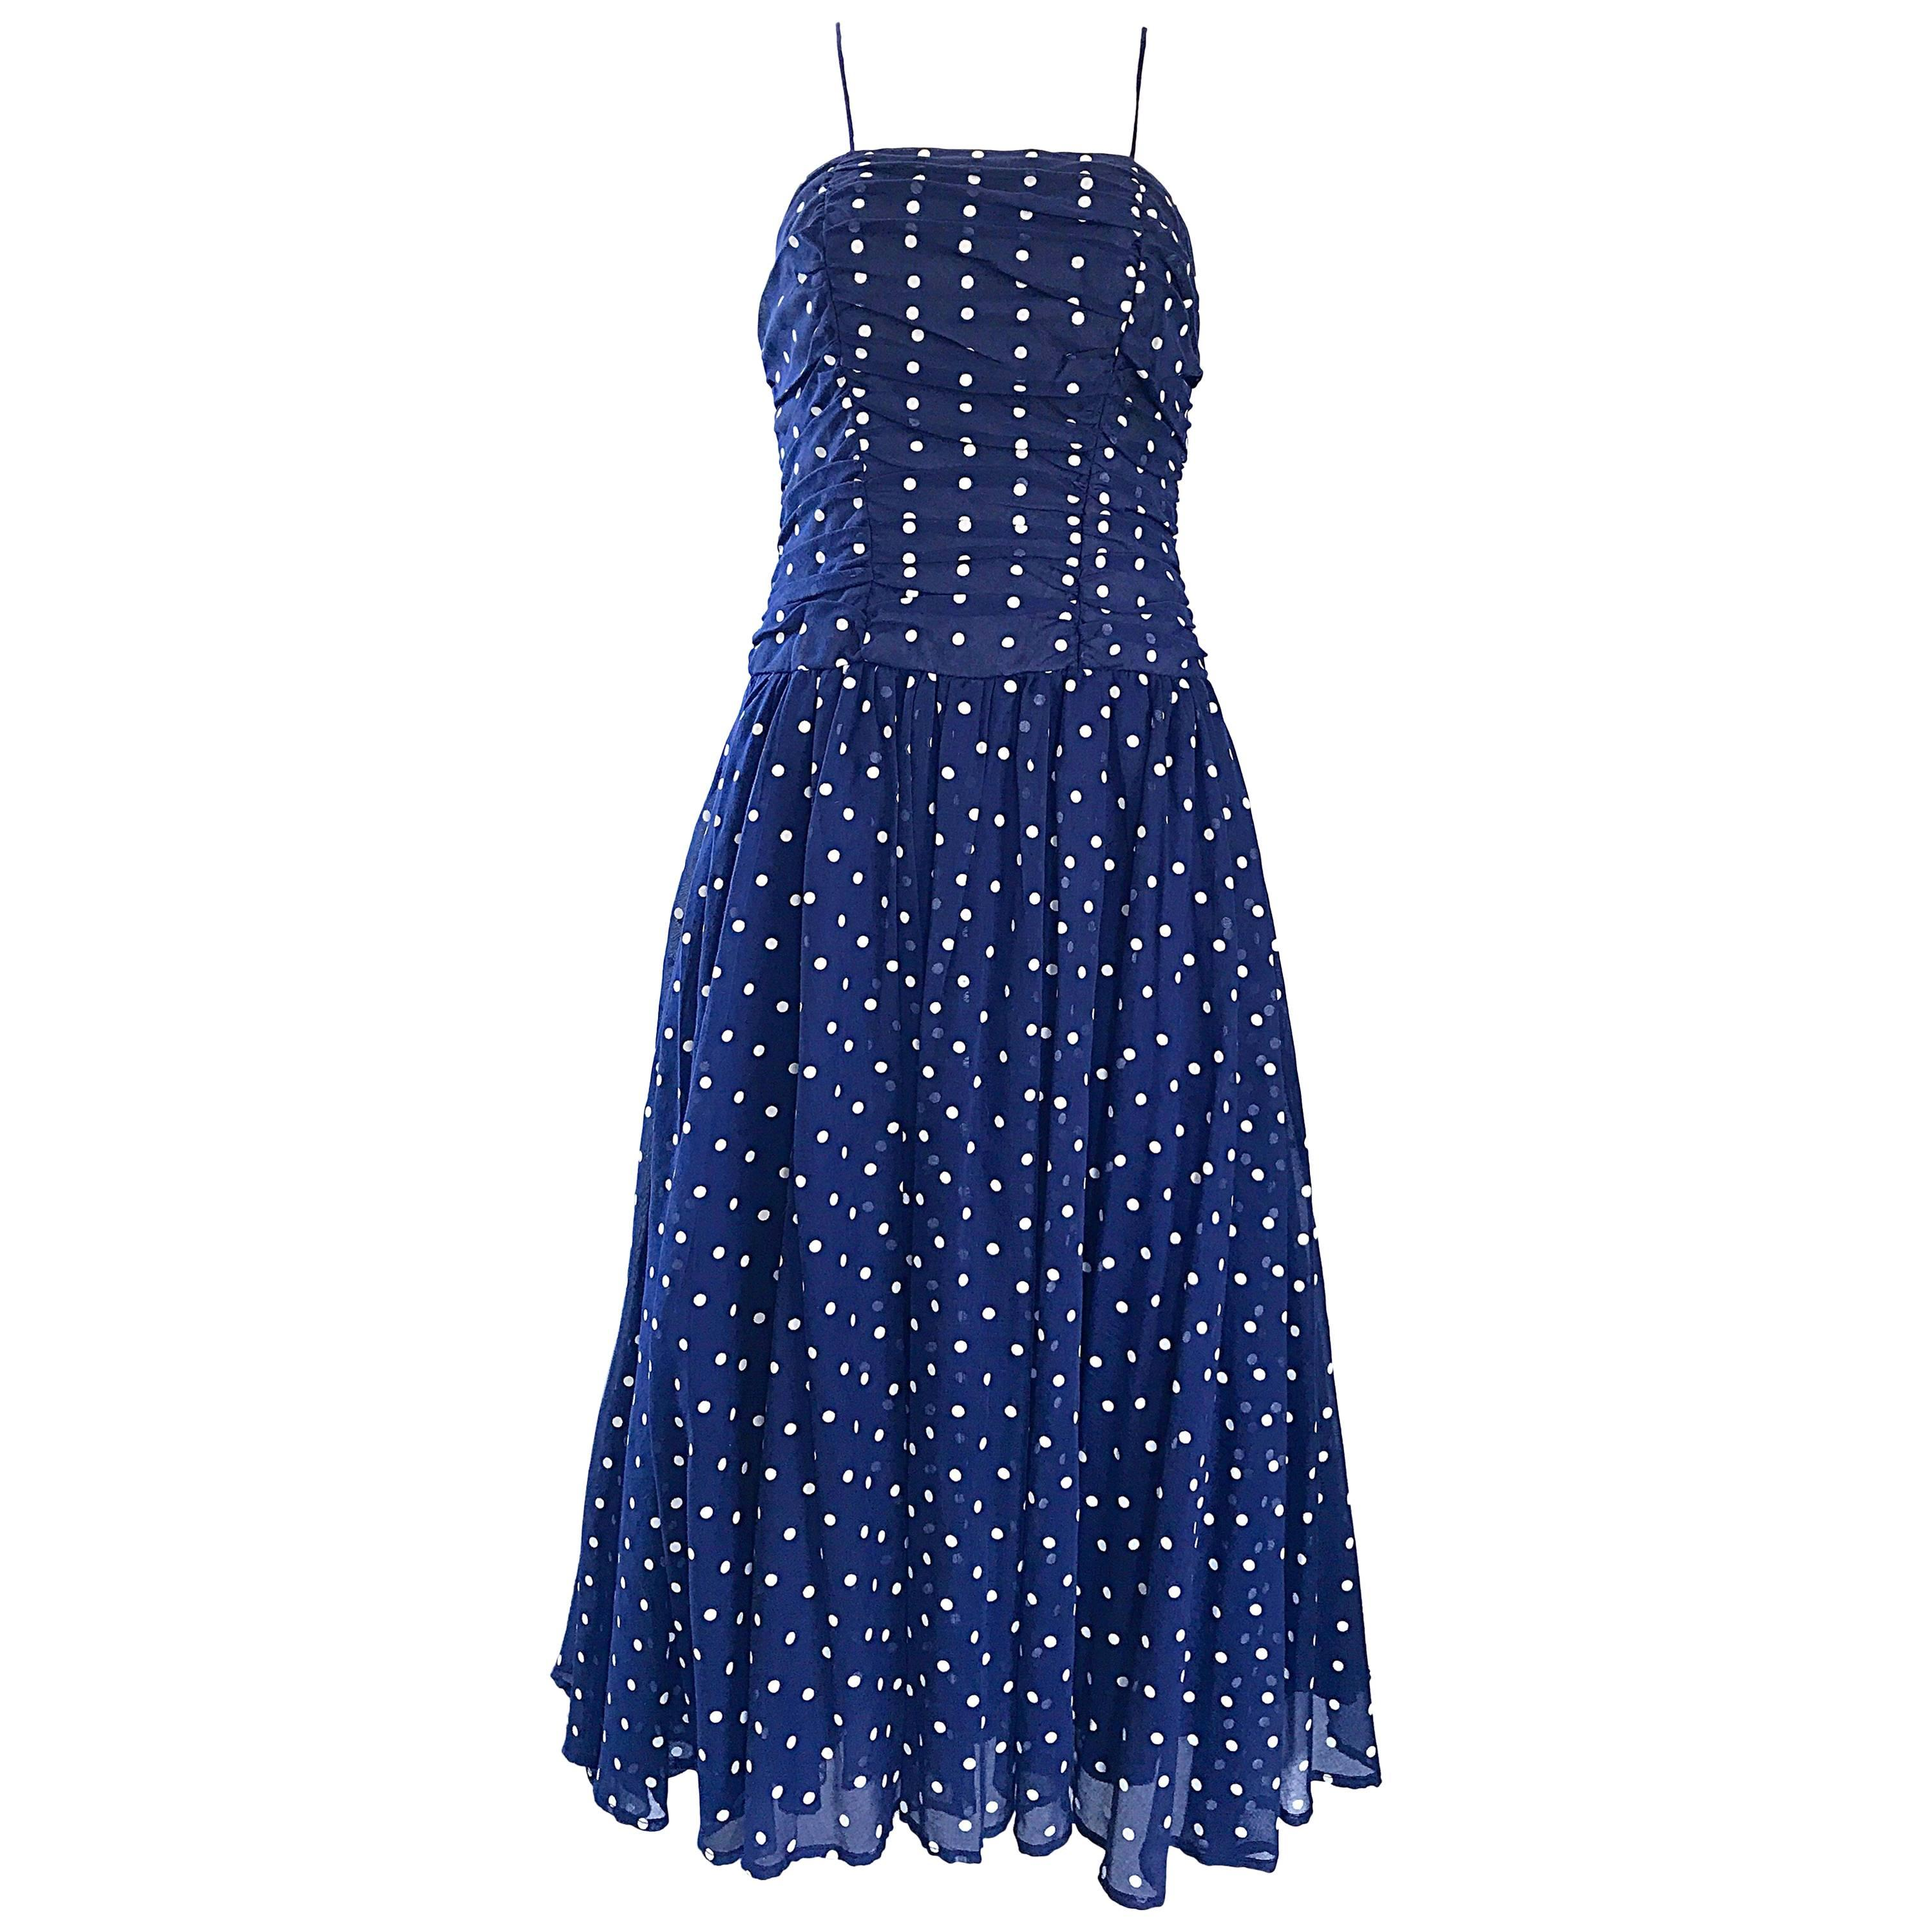 Chic Vintage Navy Blue and White Hand Painted Polka Dot Sleeveless Ruched Dress